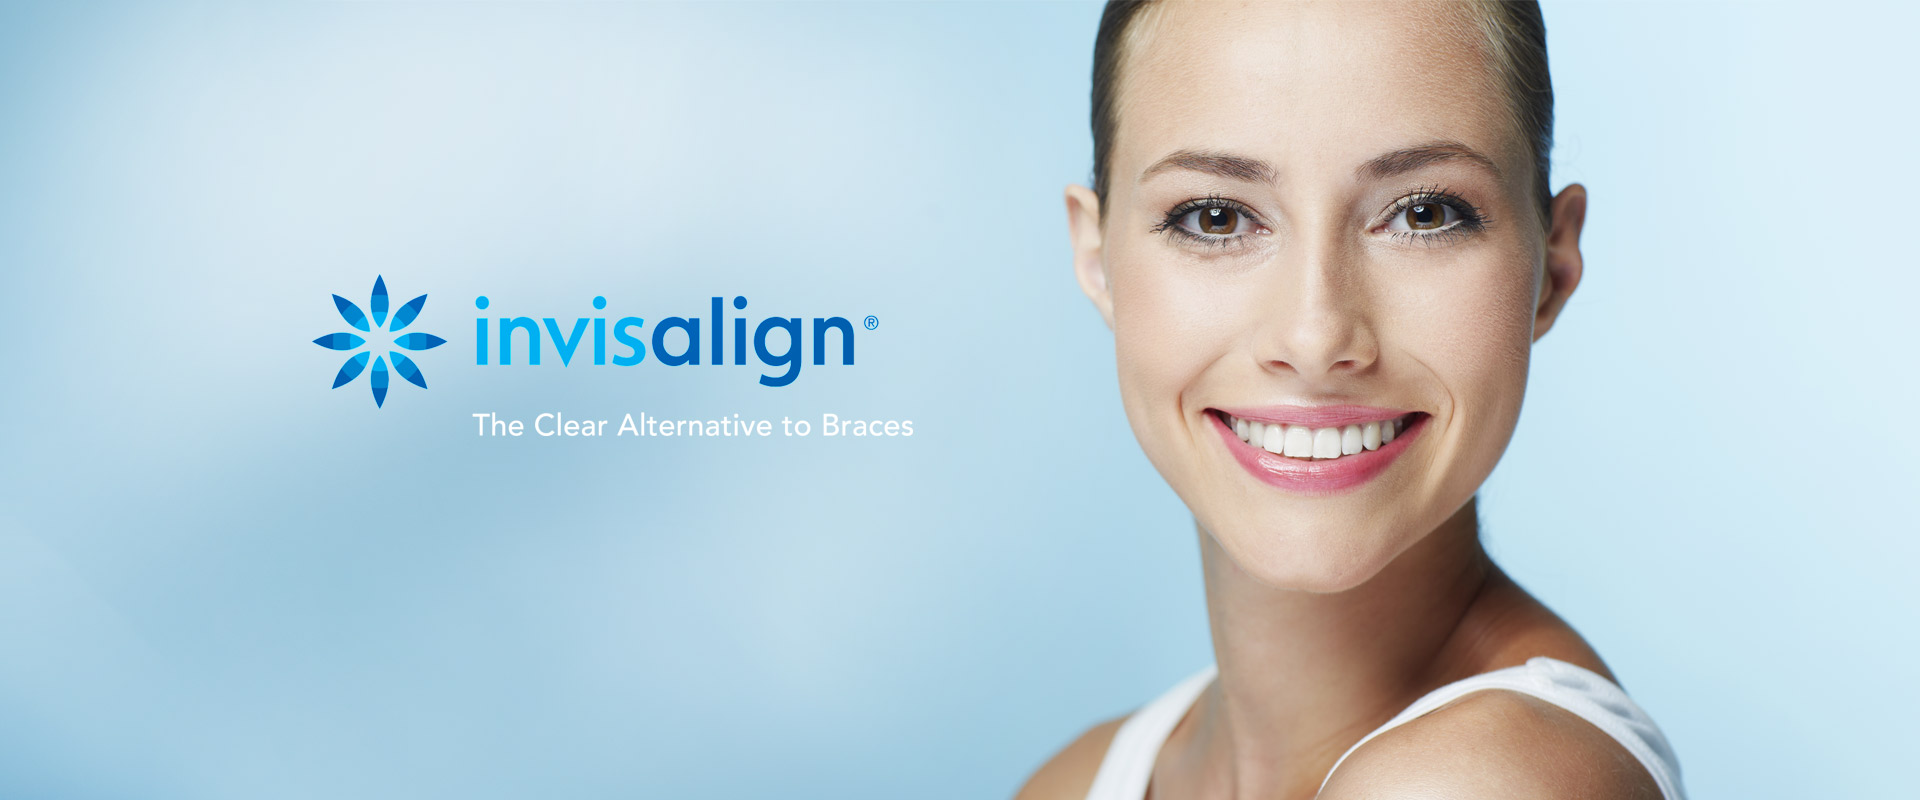 Clear braces Invisalign